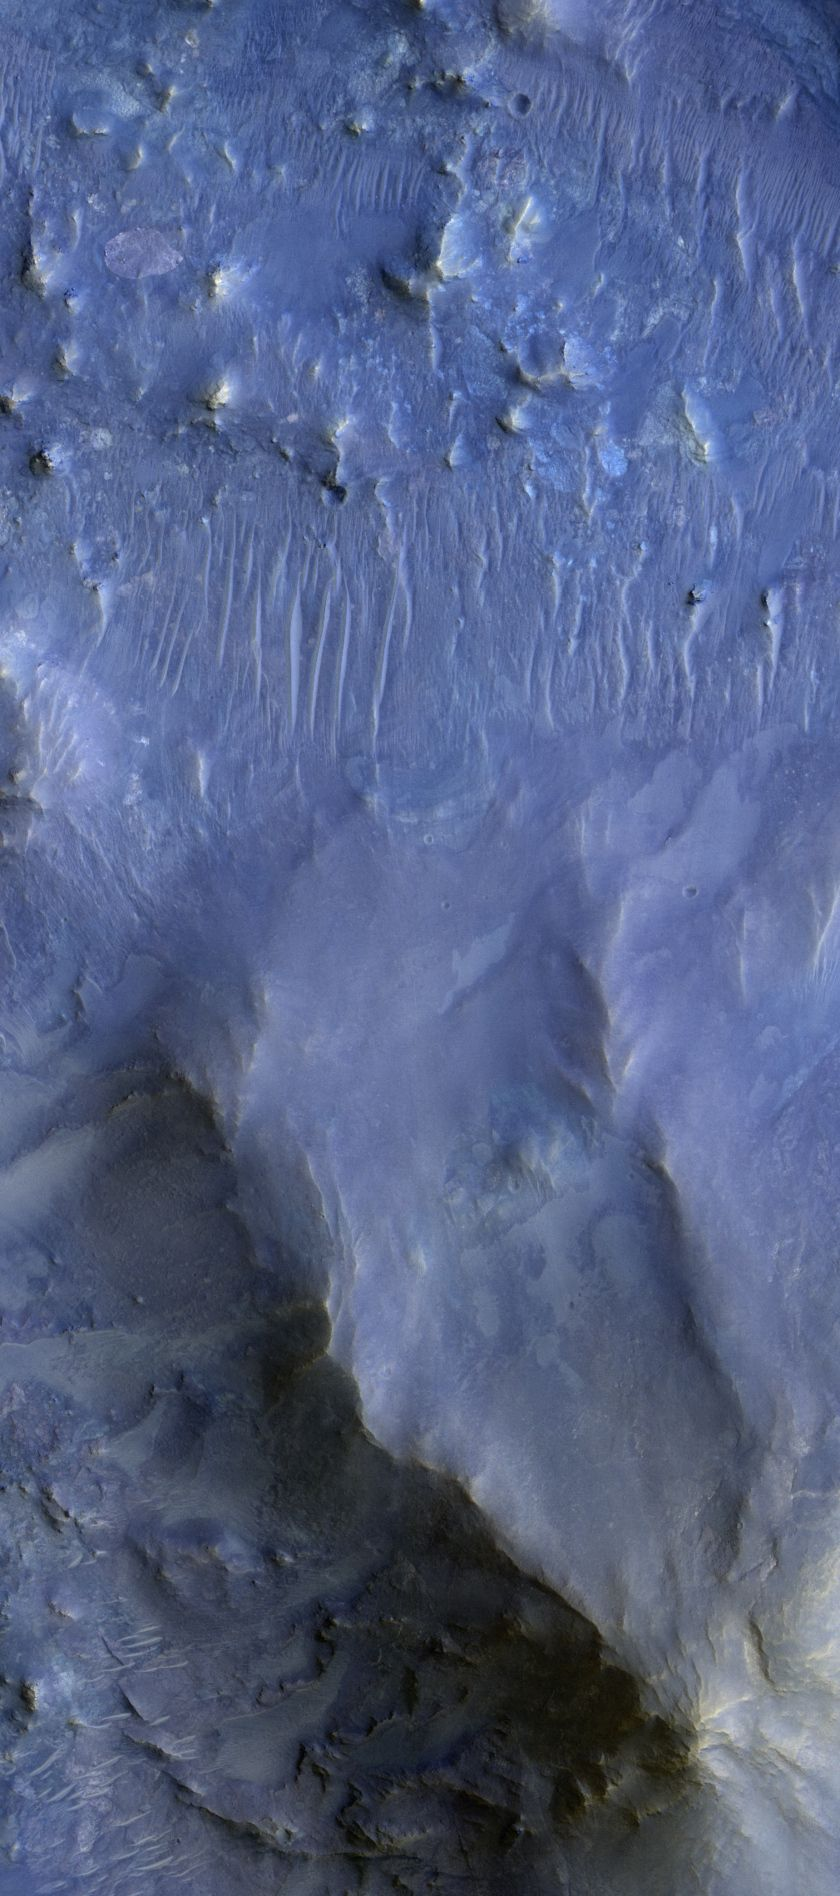 Martian Crater Rich in Opal - As per the CRISM imaging spectrometer on board the Mars Reconnaissance Orbiter.